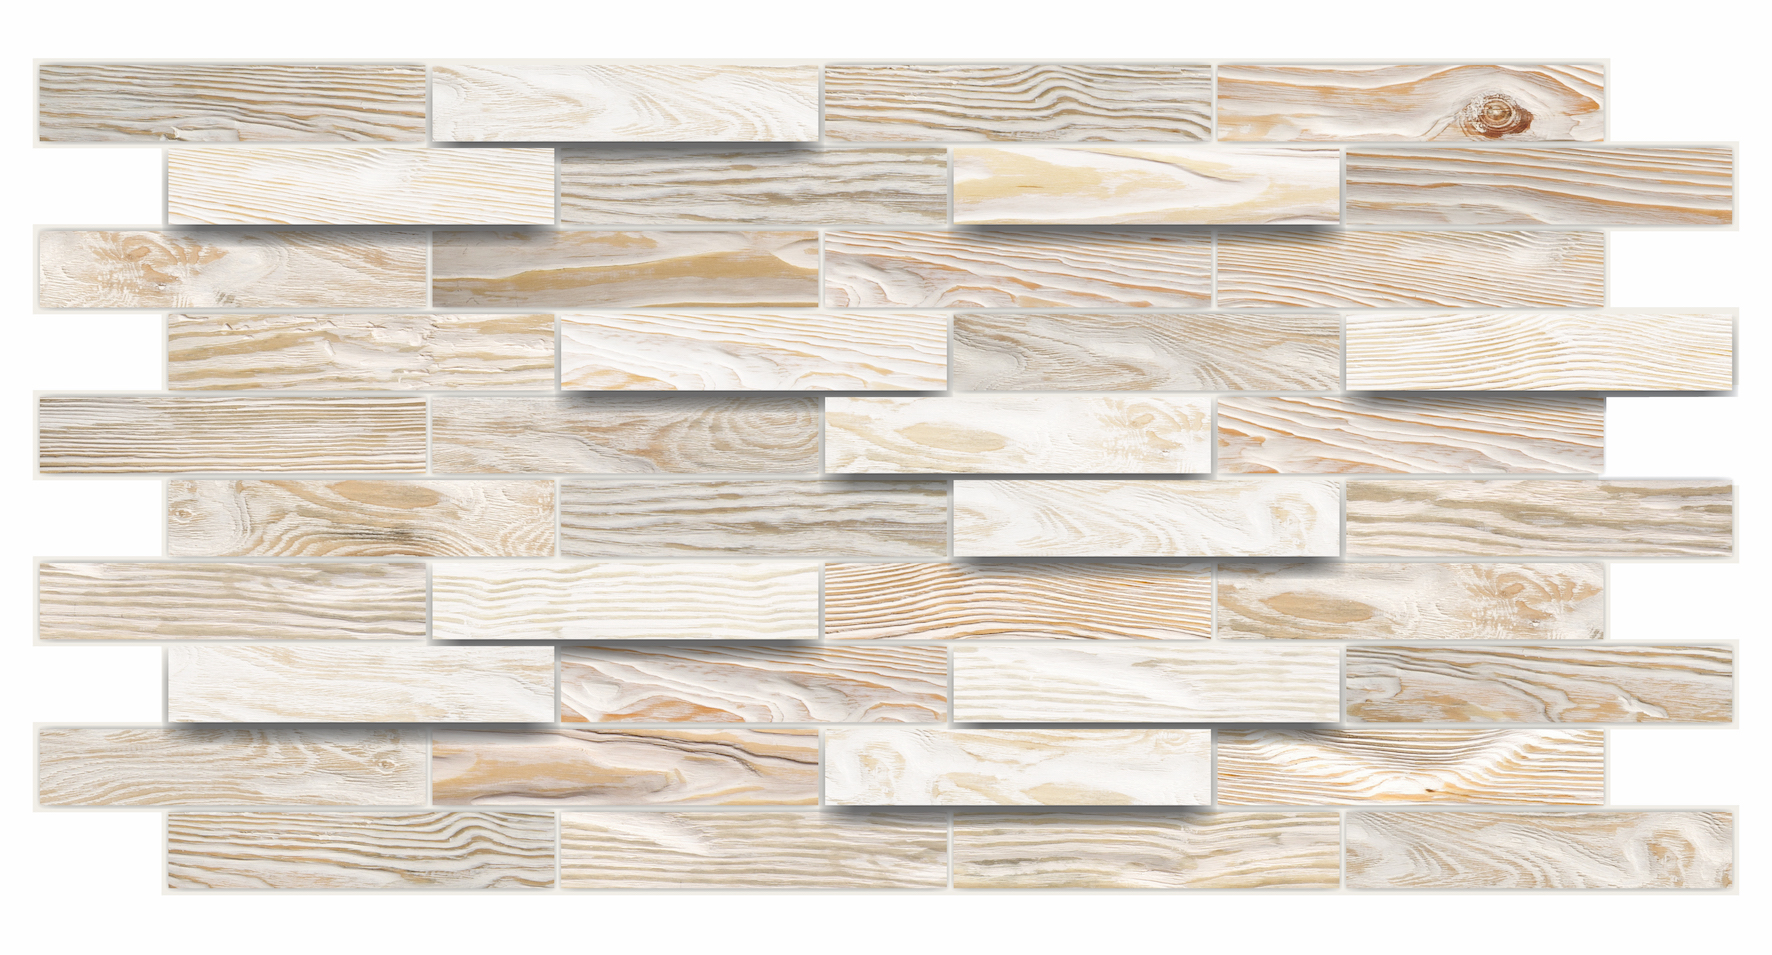 1 pvc dekorplatte mosaic wandverkleidung platten wand 98x48cm bleached oak ebay. Black Bedroom Furniture Sets. Home Design Ideas